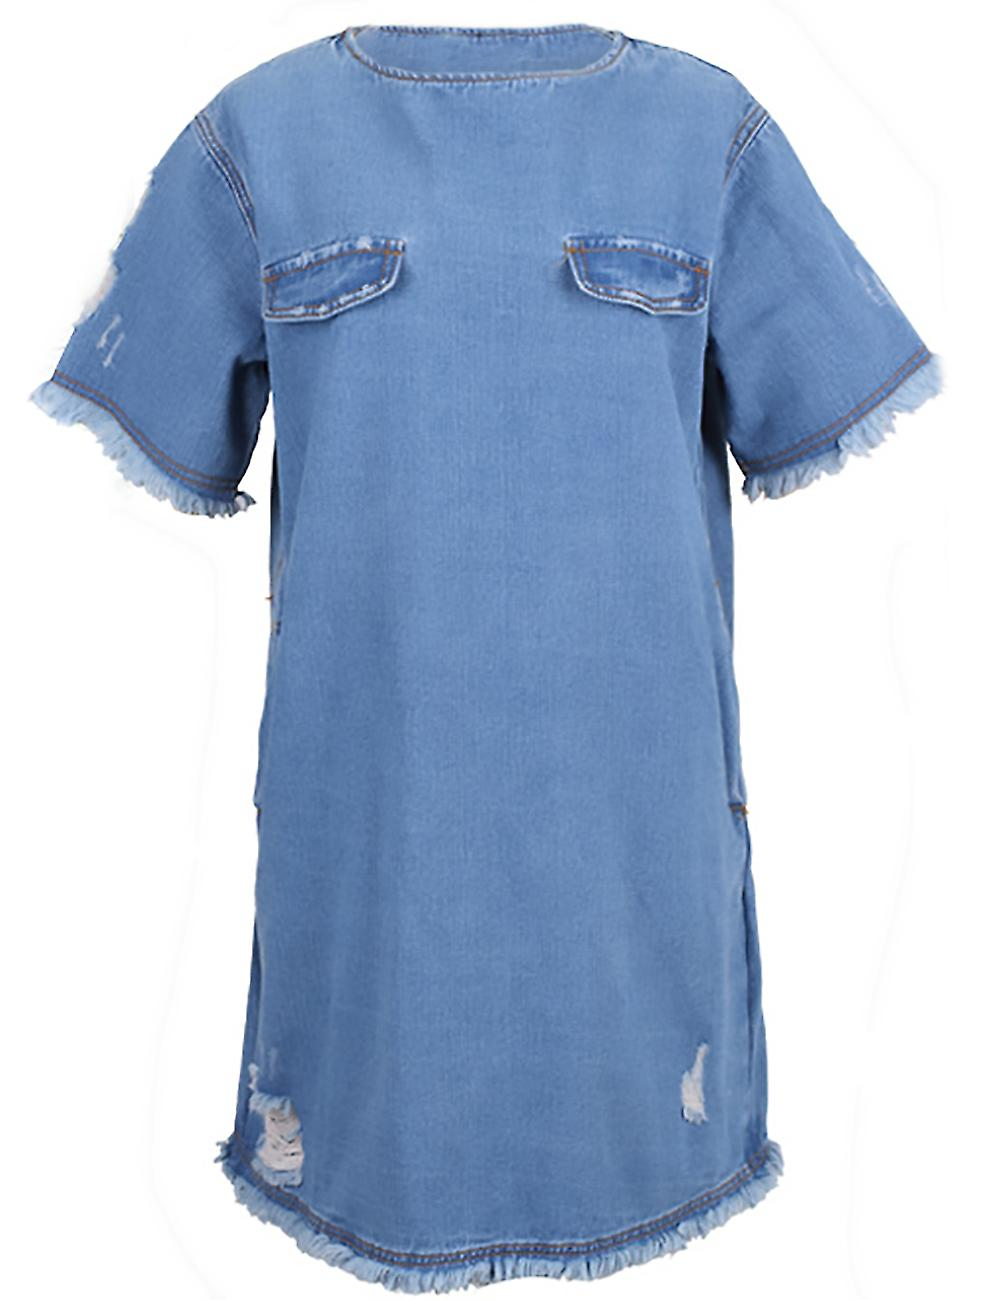 Short dress vintage style jeans and worn Roulia